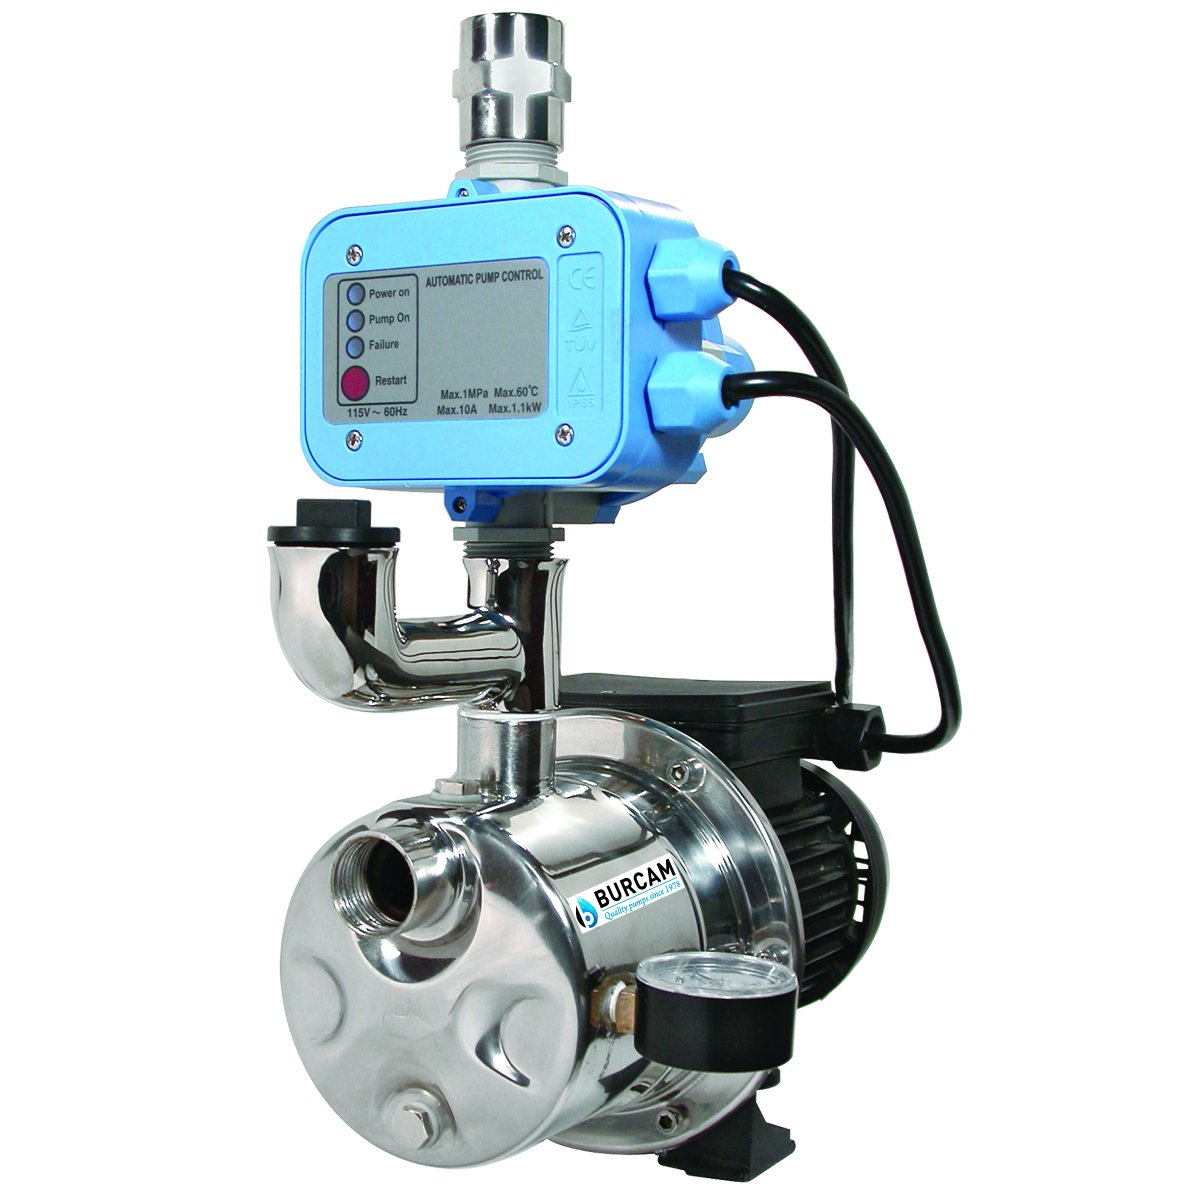 BURCAM 506532SS 3/4 HP Dual Application Tankless Shallow Well Jet Pump and Booster System by Bur-Cam